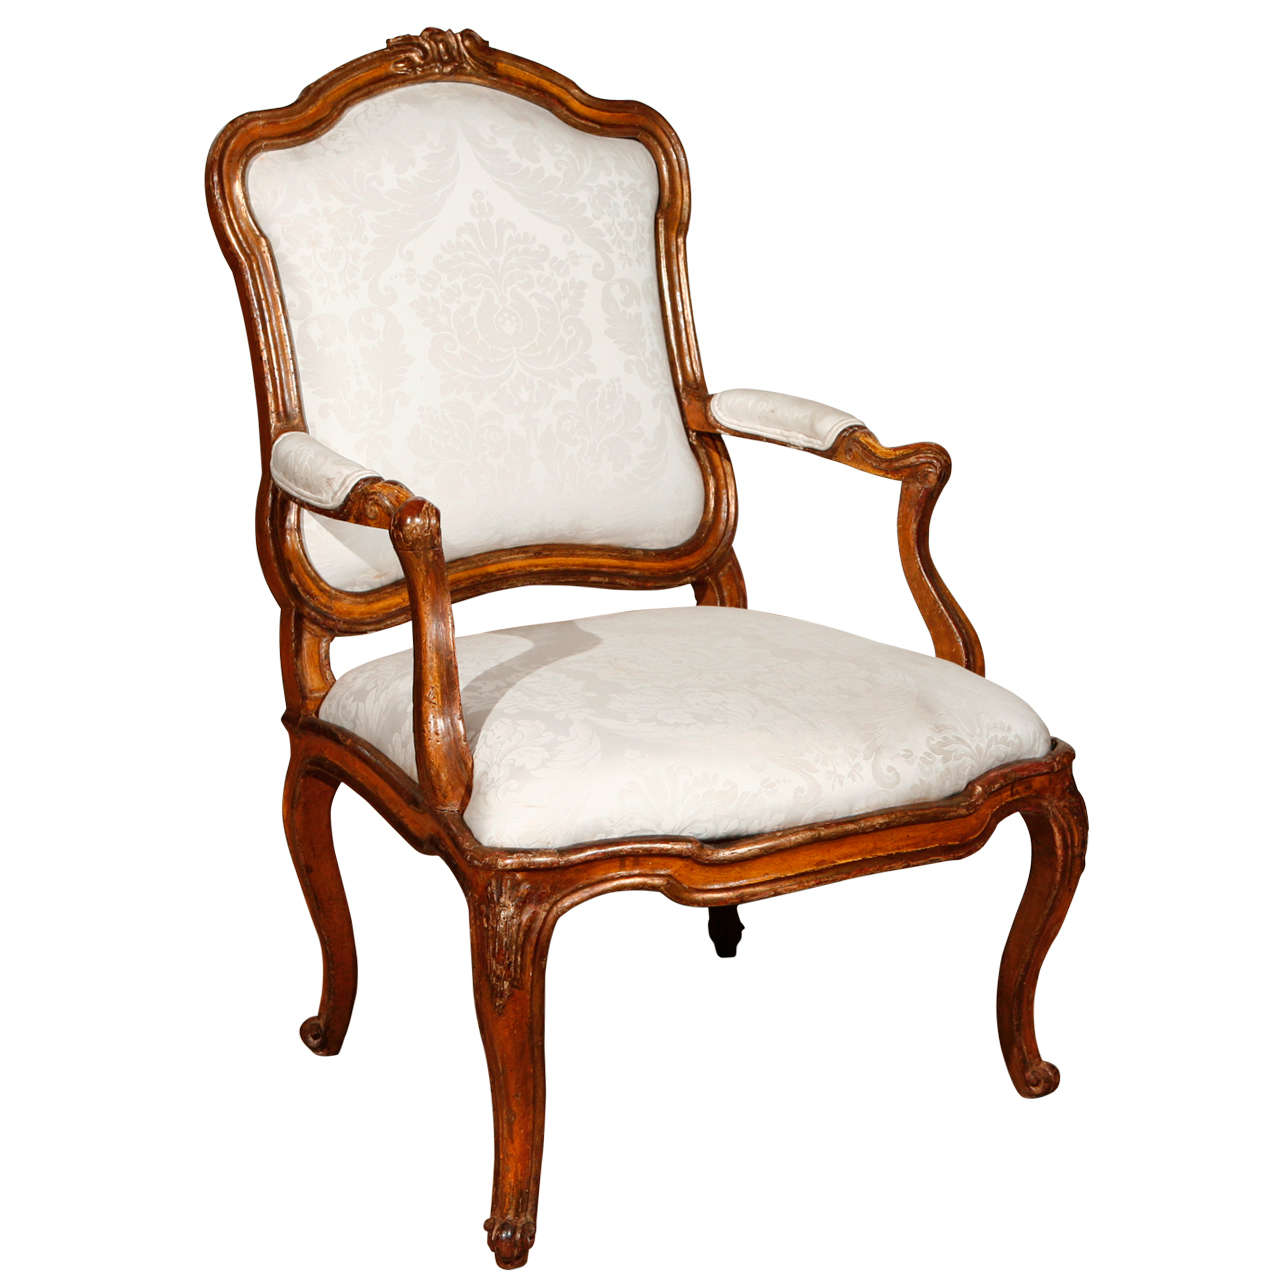 18th C Italian Rococo Style Chair For Sale At 1stdibs